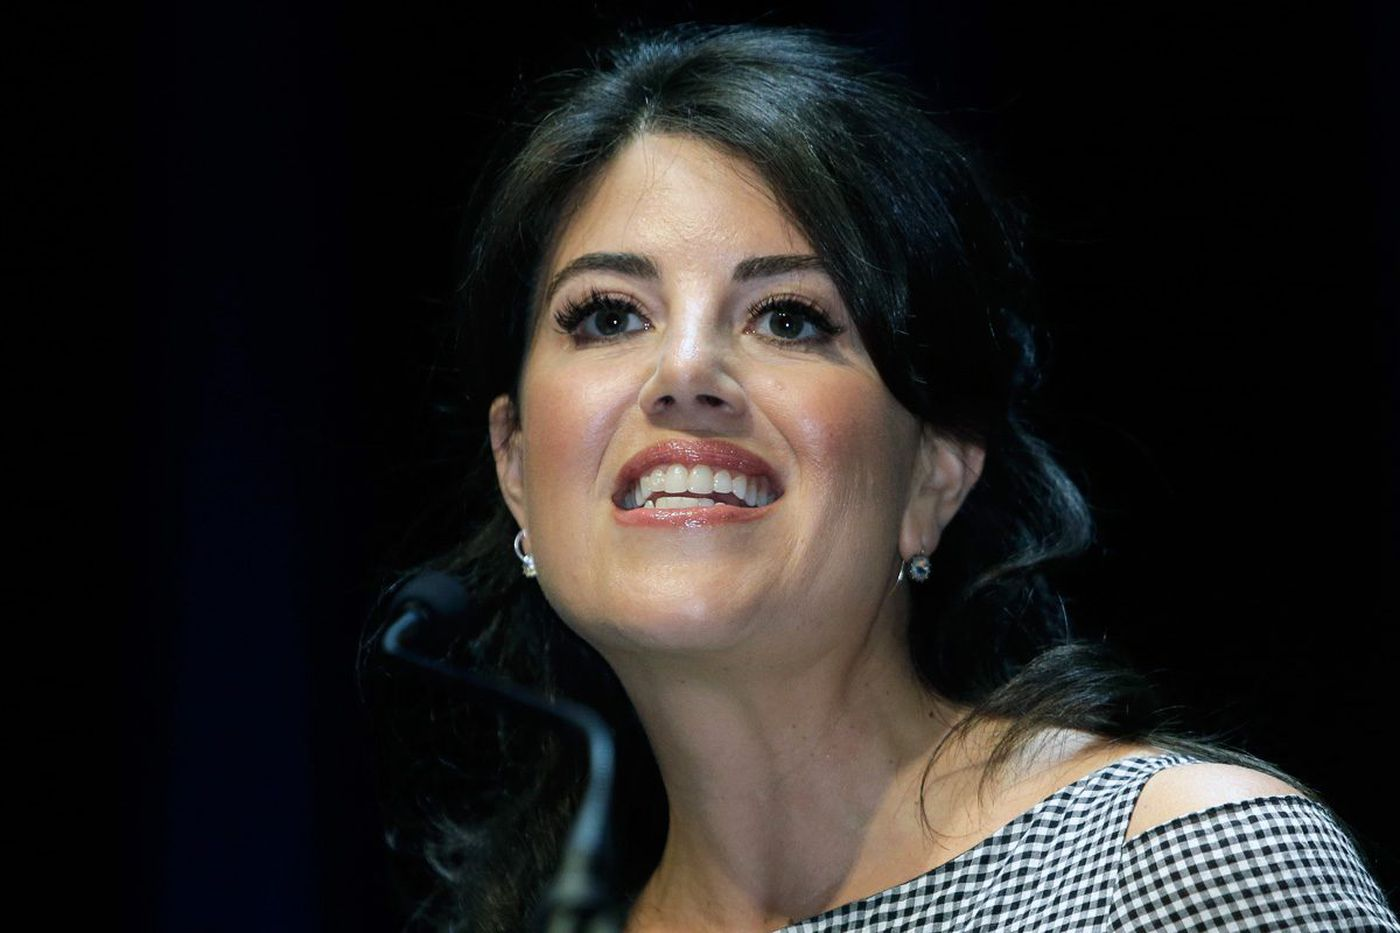 Monica Lewinsky objects to title of HLN special, and the network changes it